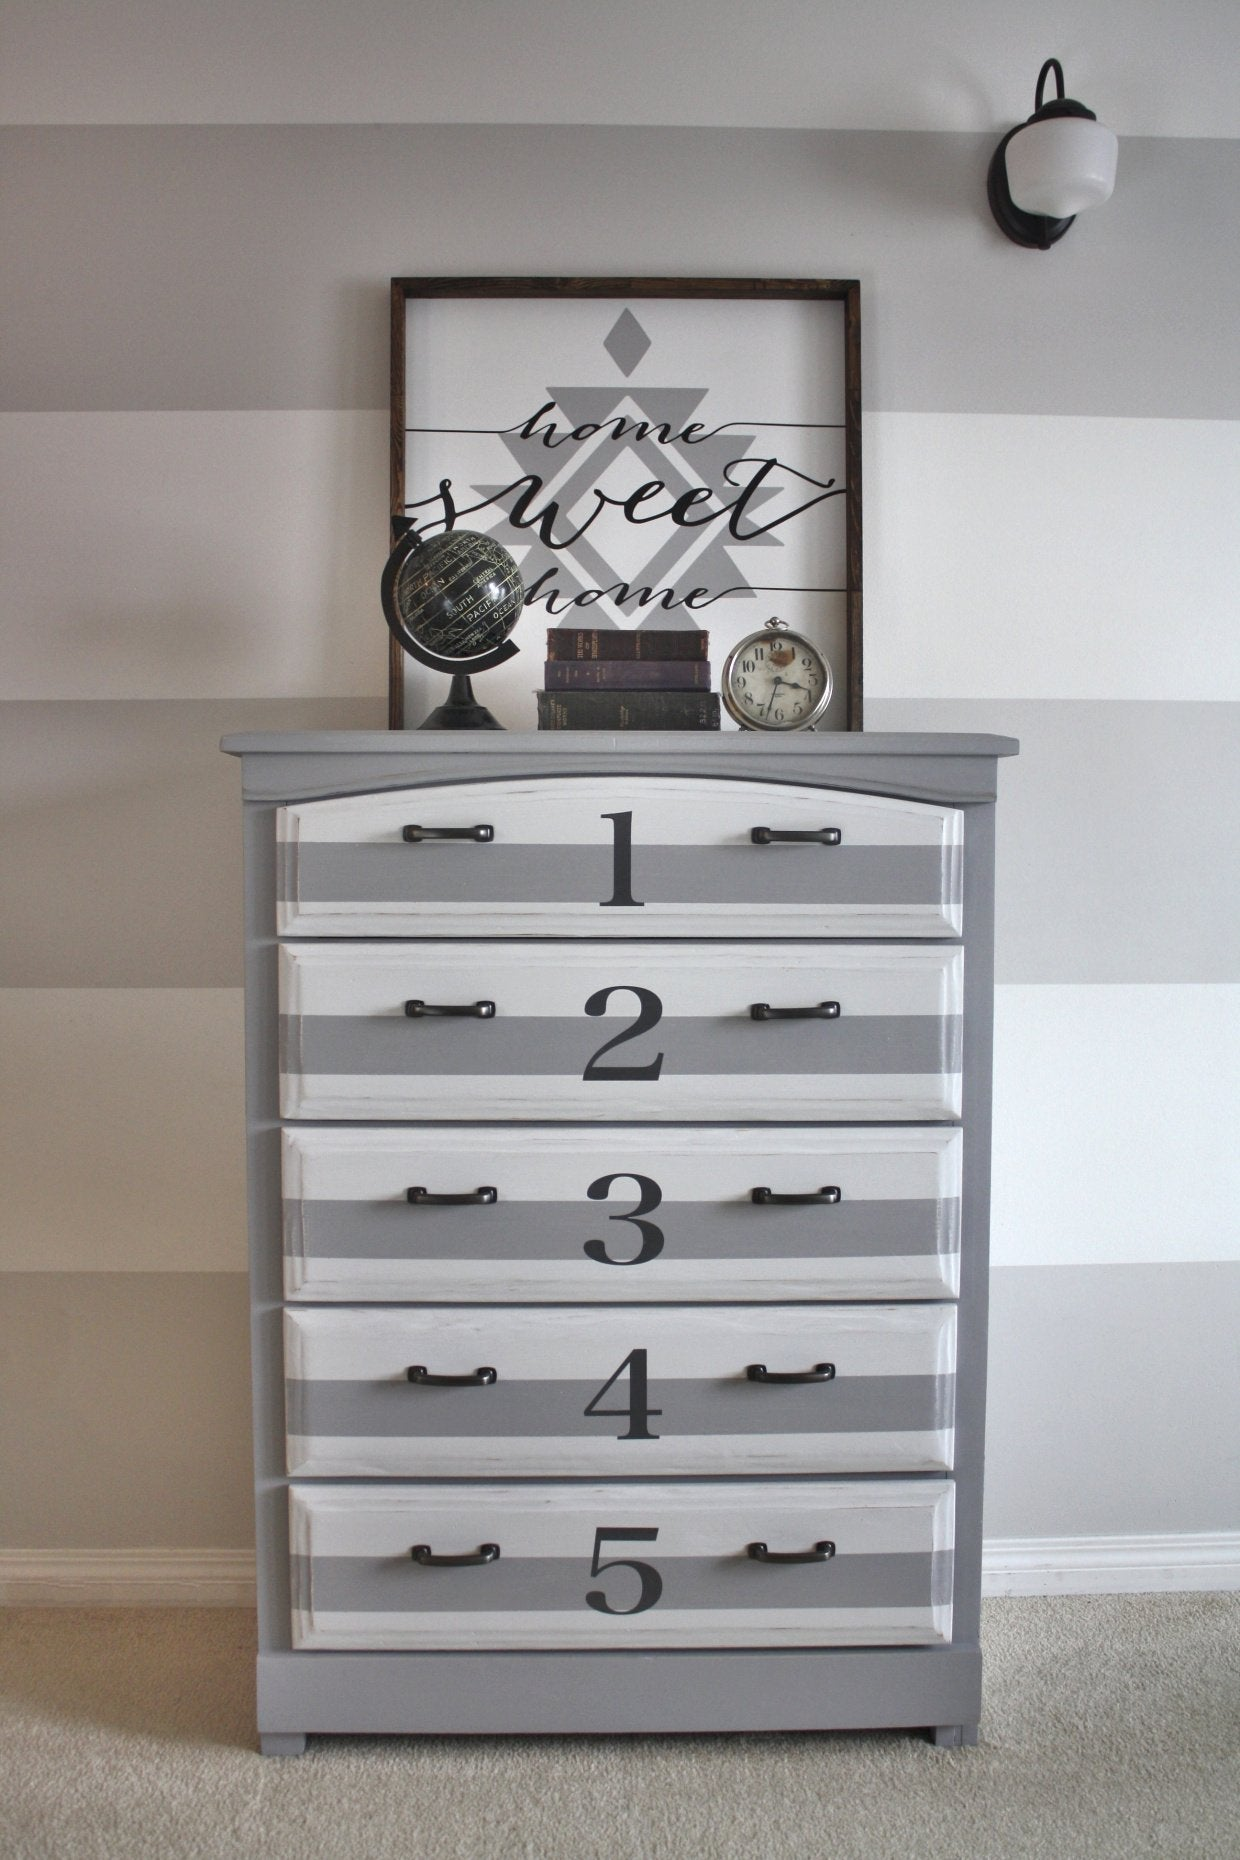 grey and white striped dresser with painted numbers - eco-friendly DIY furniture paint by Country Chic Paint